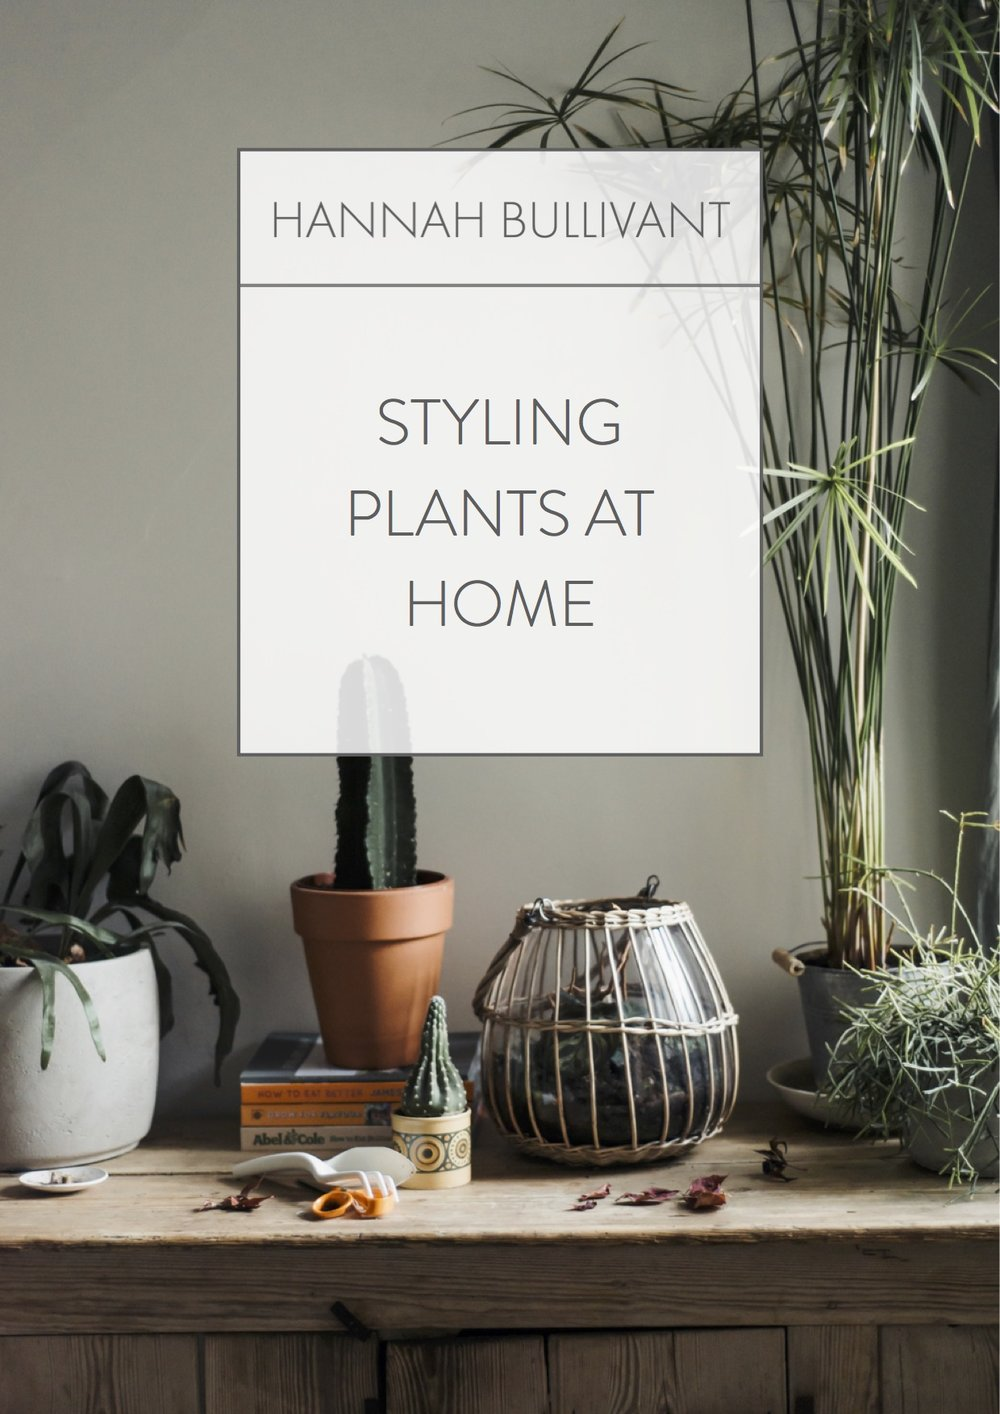 Styling plants at home | Hannah Bullivant